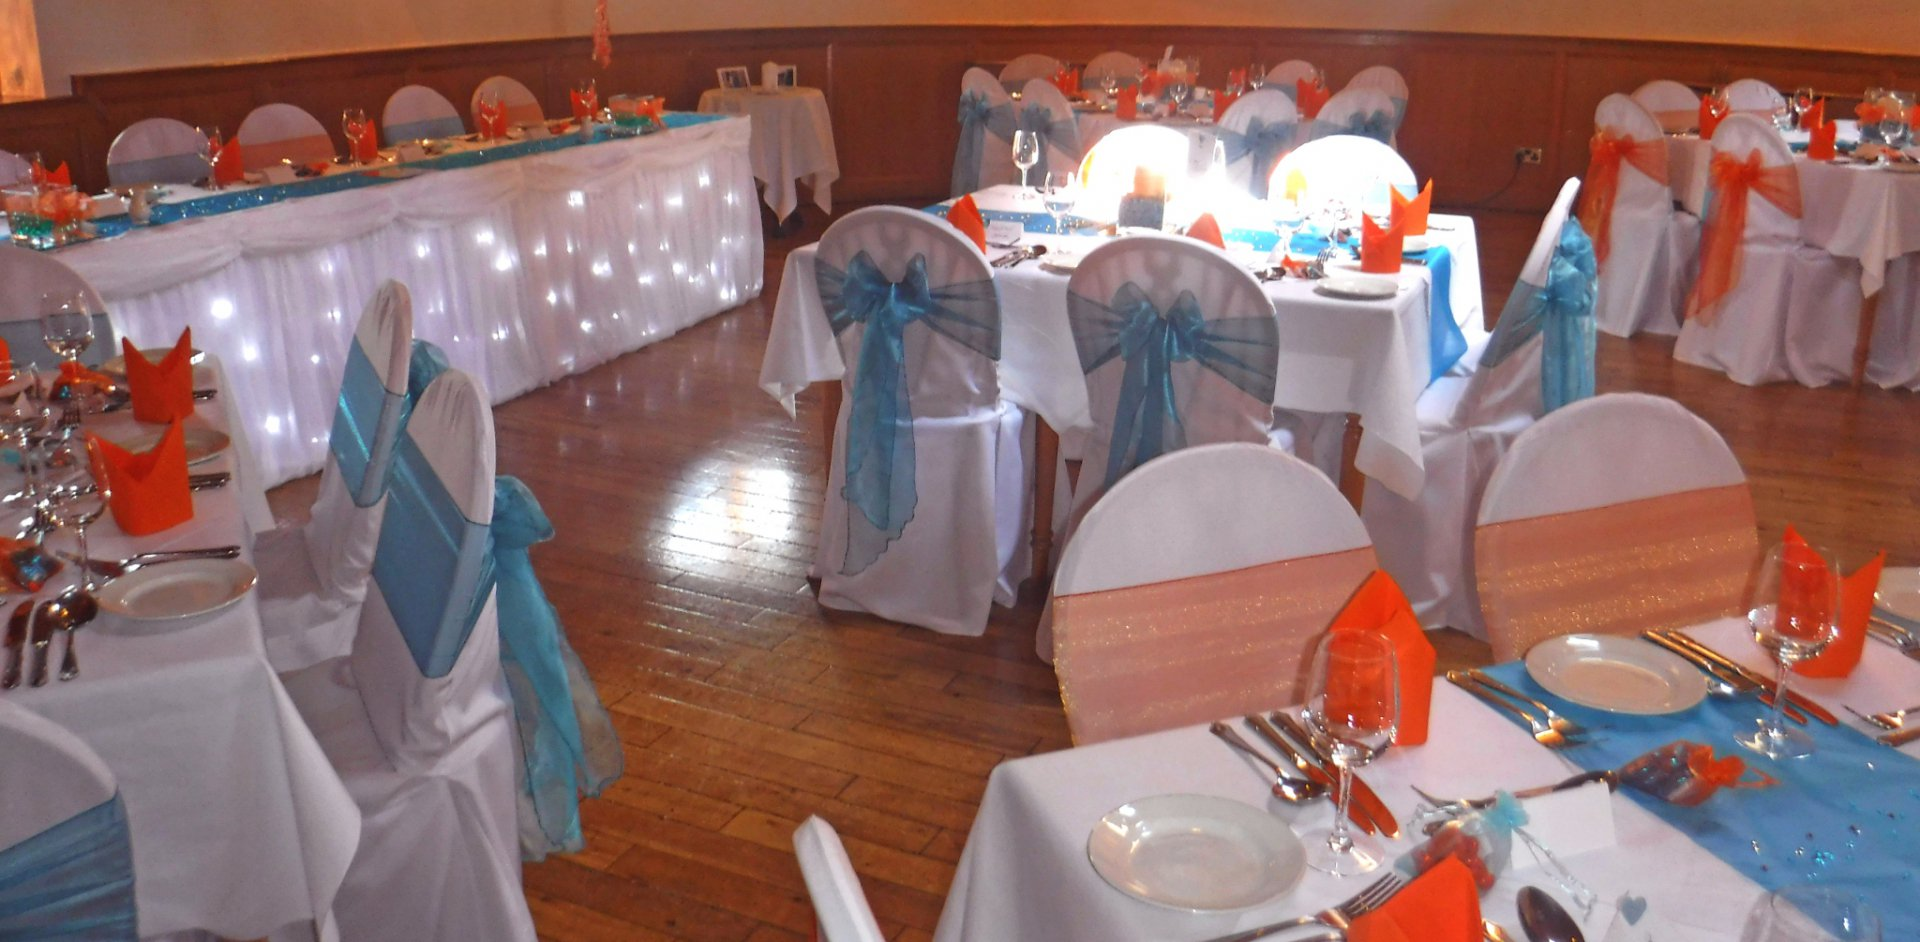 Affordable Places to Get Married - The Mill Forge Hotel near Gretna Green